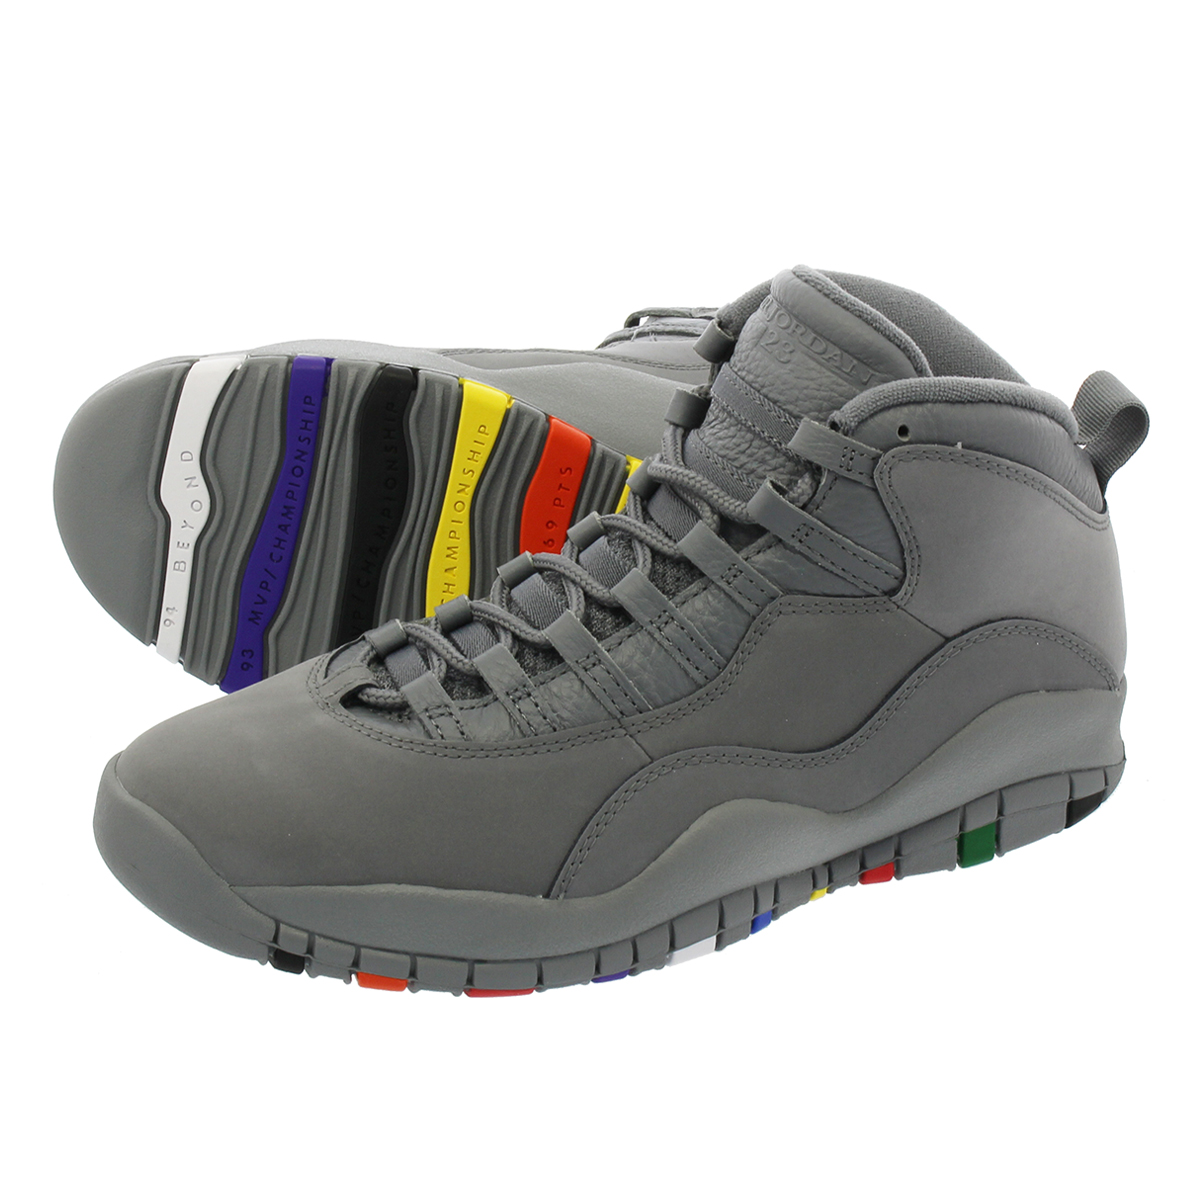 sneakers for cheap 11507 72129 NIKE AIR JORDAN 10 RETRO Nike Air Jordan 10 nostalgic COOL GREY COOL GREY  WHITE